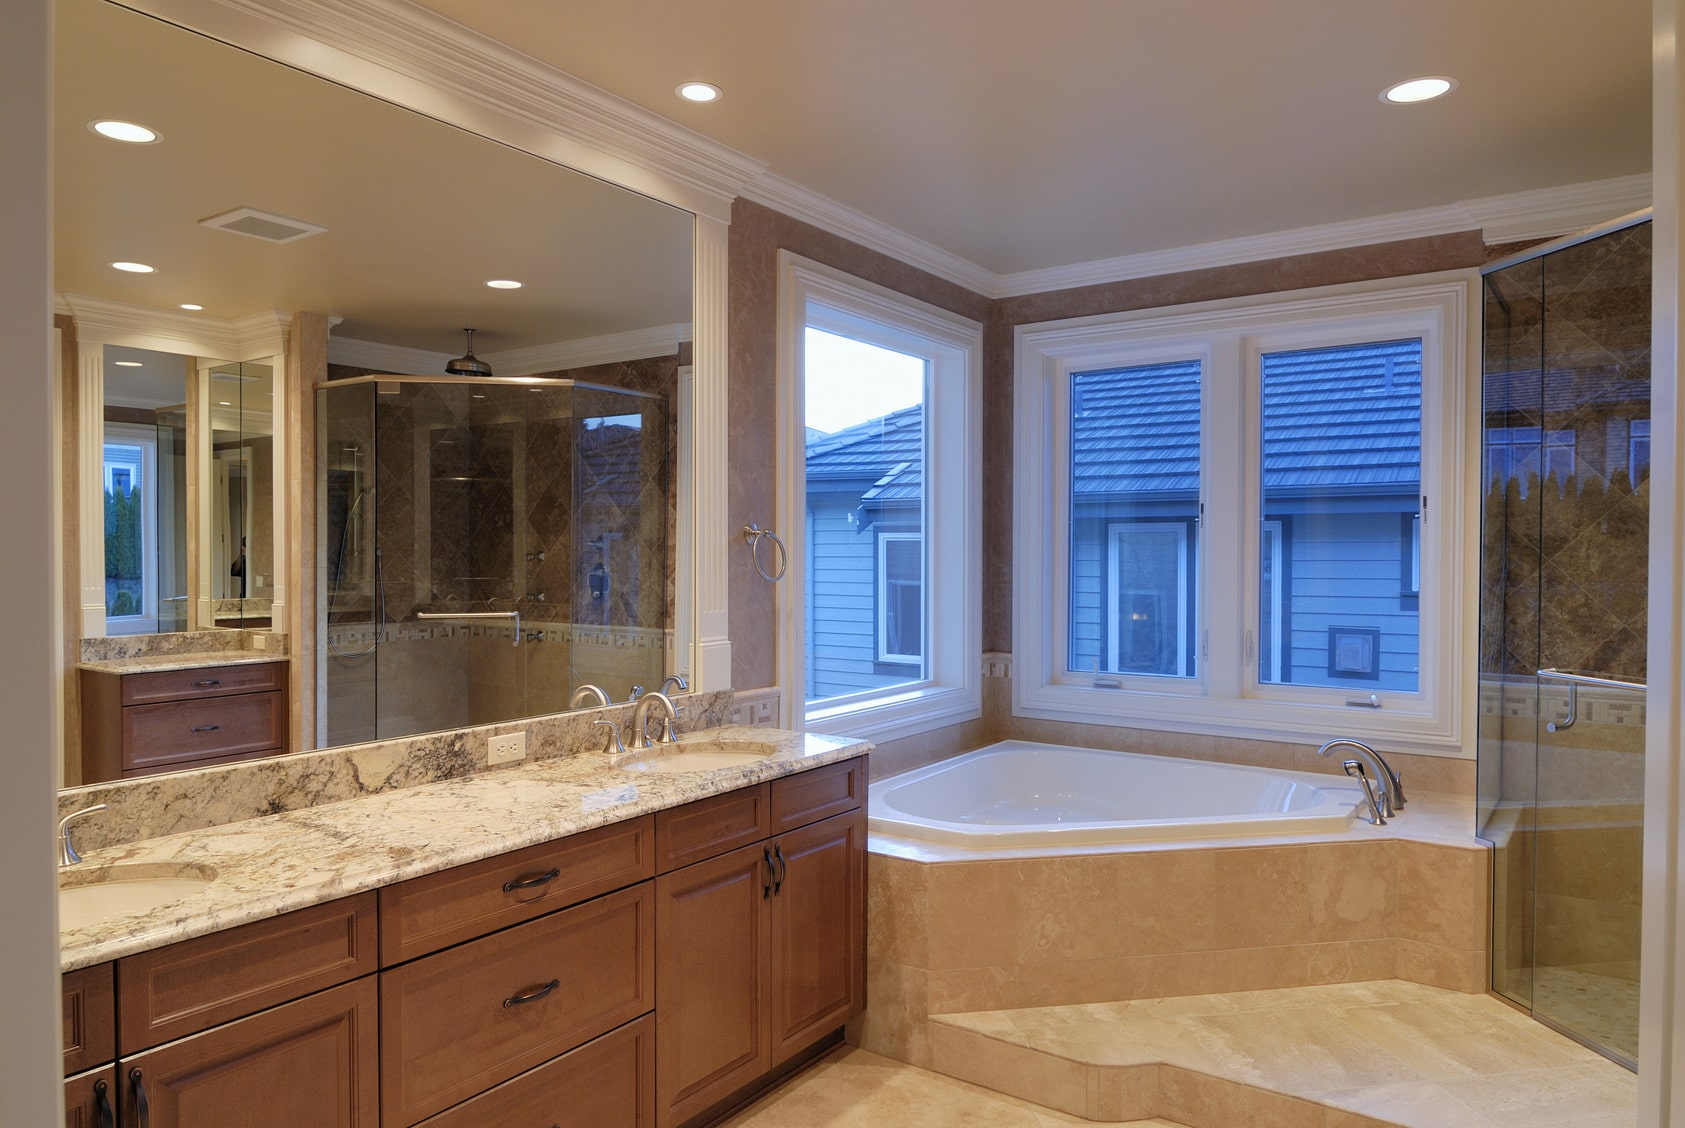 Quality Bathroom Remodeling CT Top Rated Contractor - Bathroom remodel contest